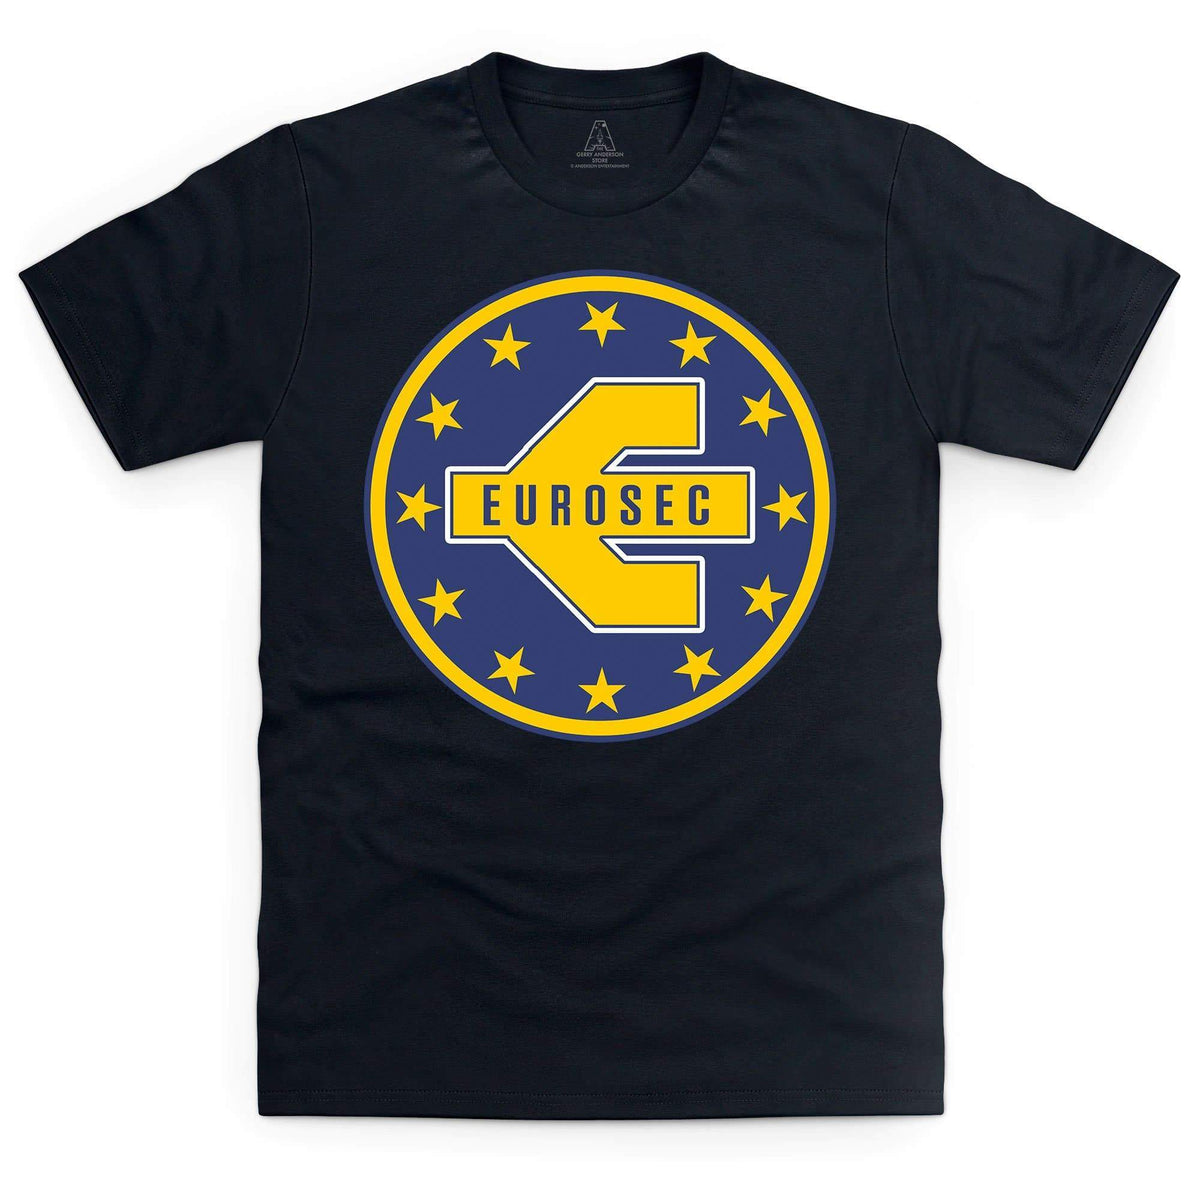 Eurosec Logo Kid's T-shirt - The Gerry Anderson Store